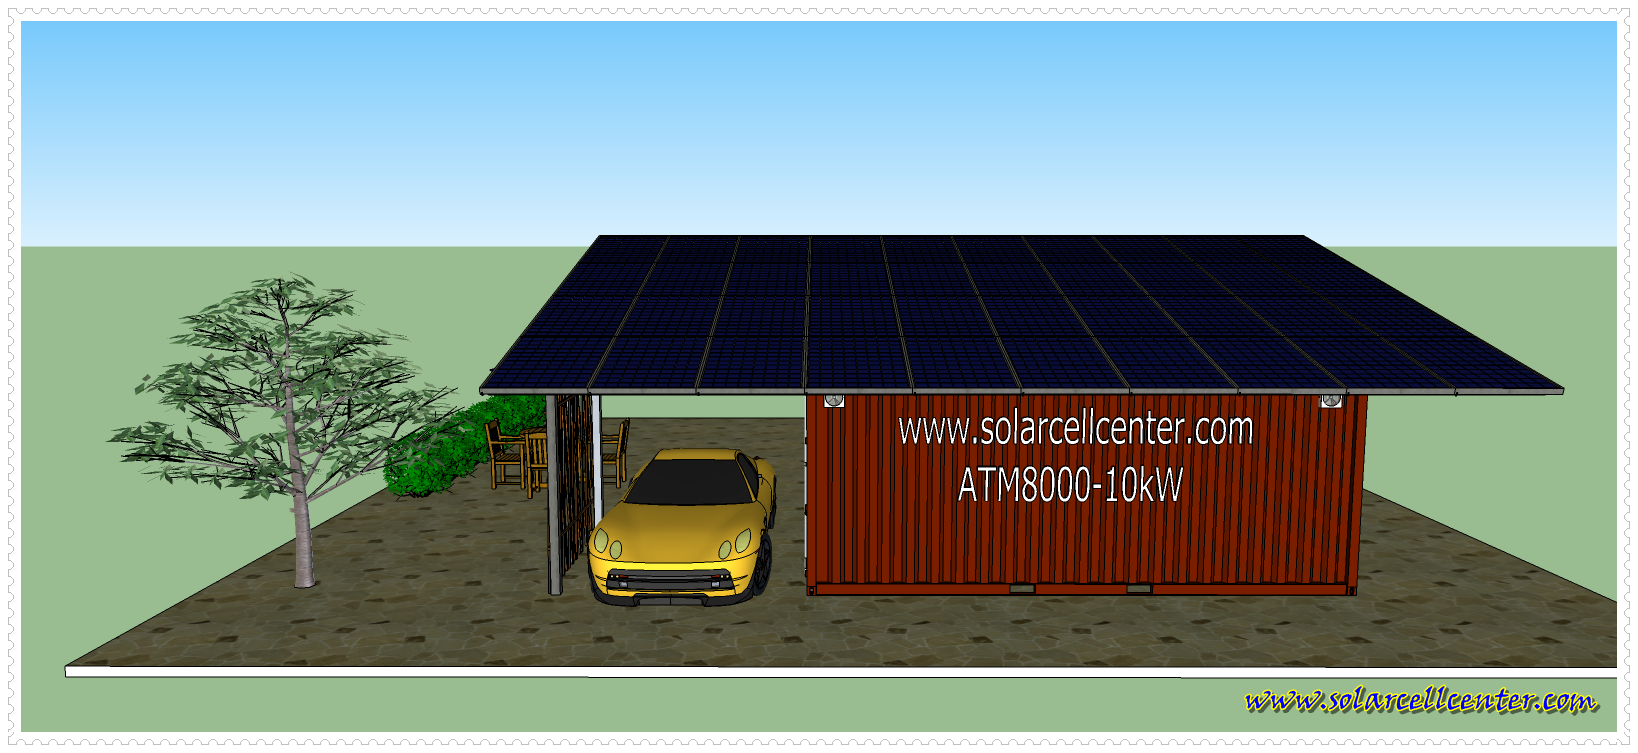 Container + Solar Cell 10Kw - TYPE1 - Back